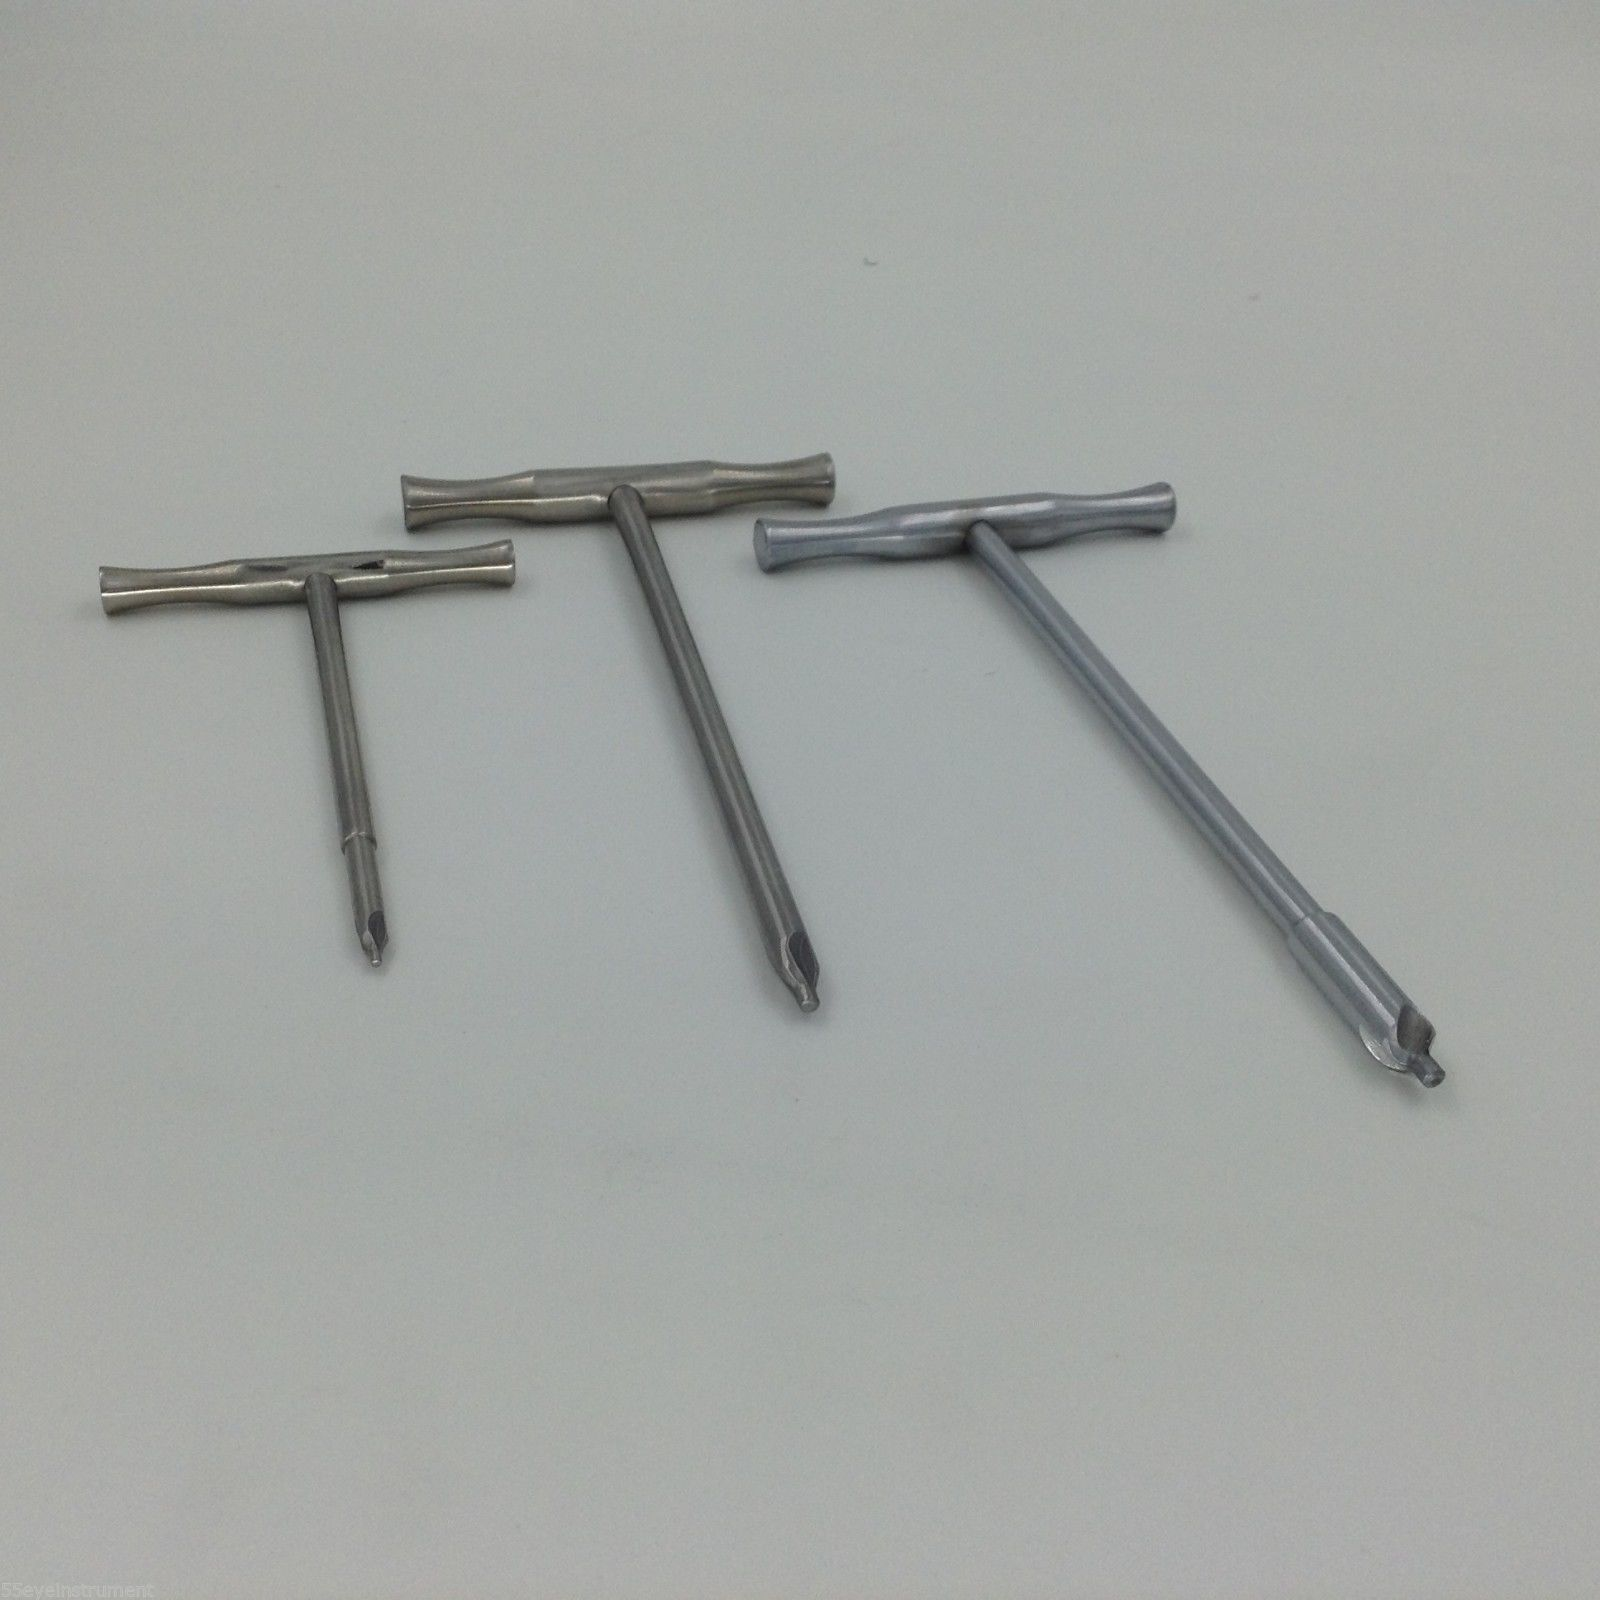 3 Pcs Reamer With T-handle 4mm 6mm 8mm Tip Orthopedics Veterinary Instrument